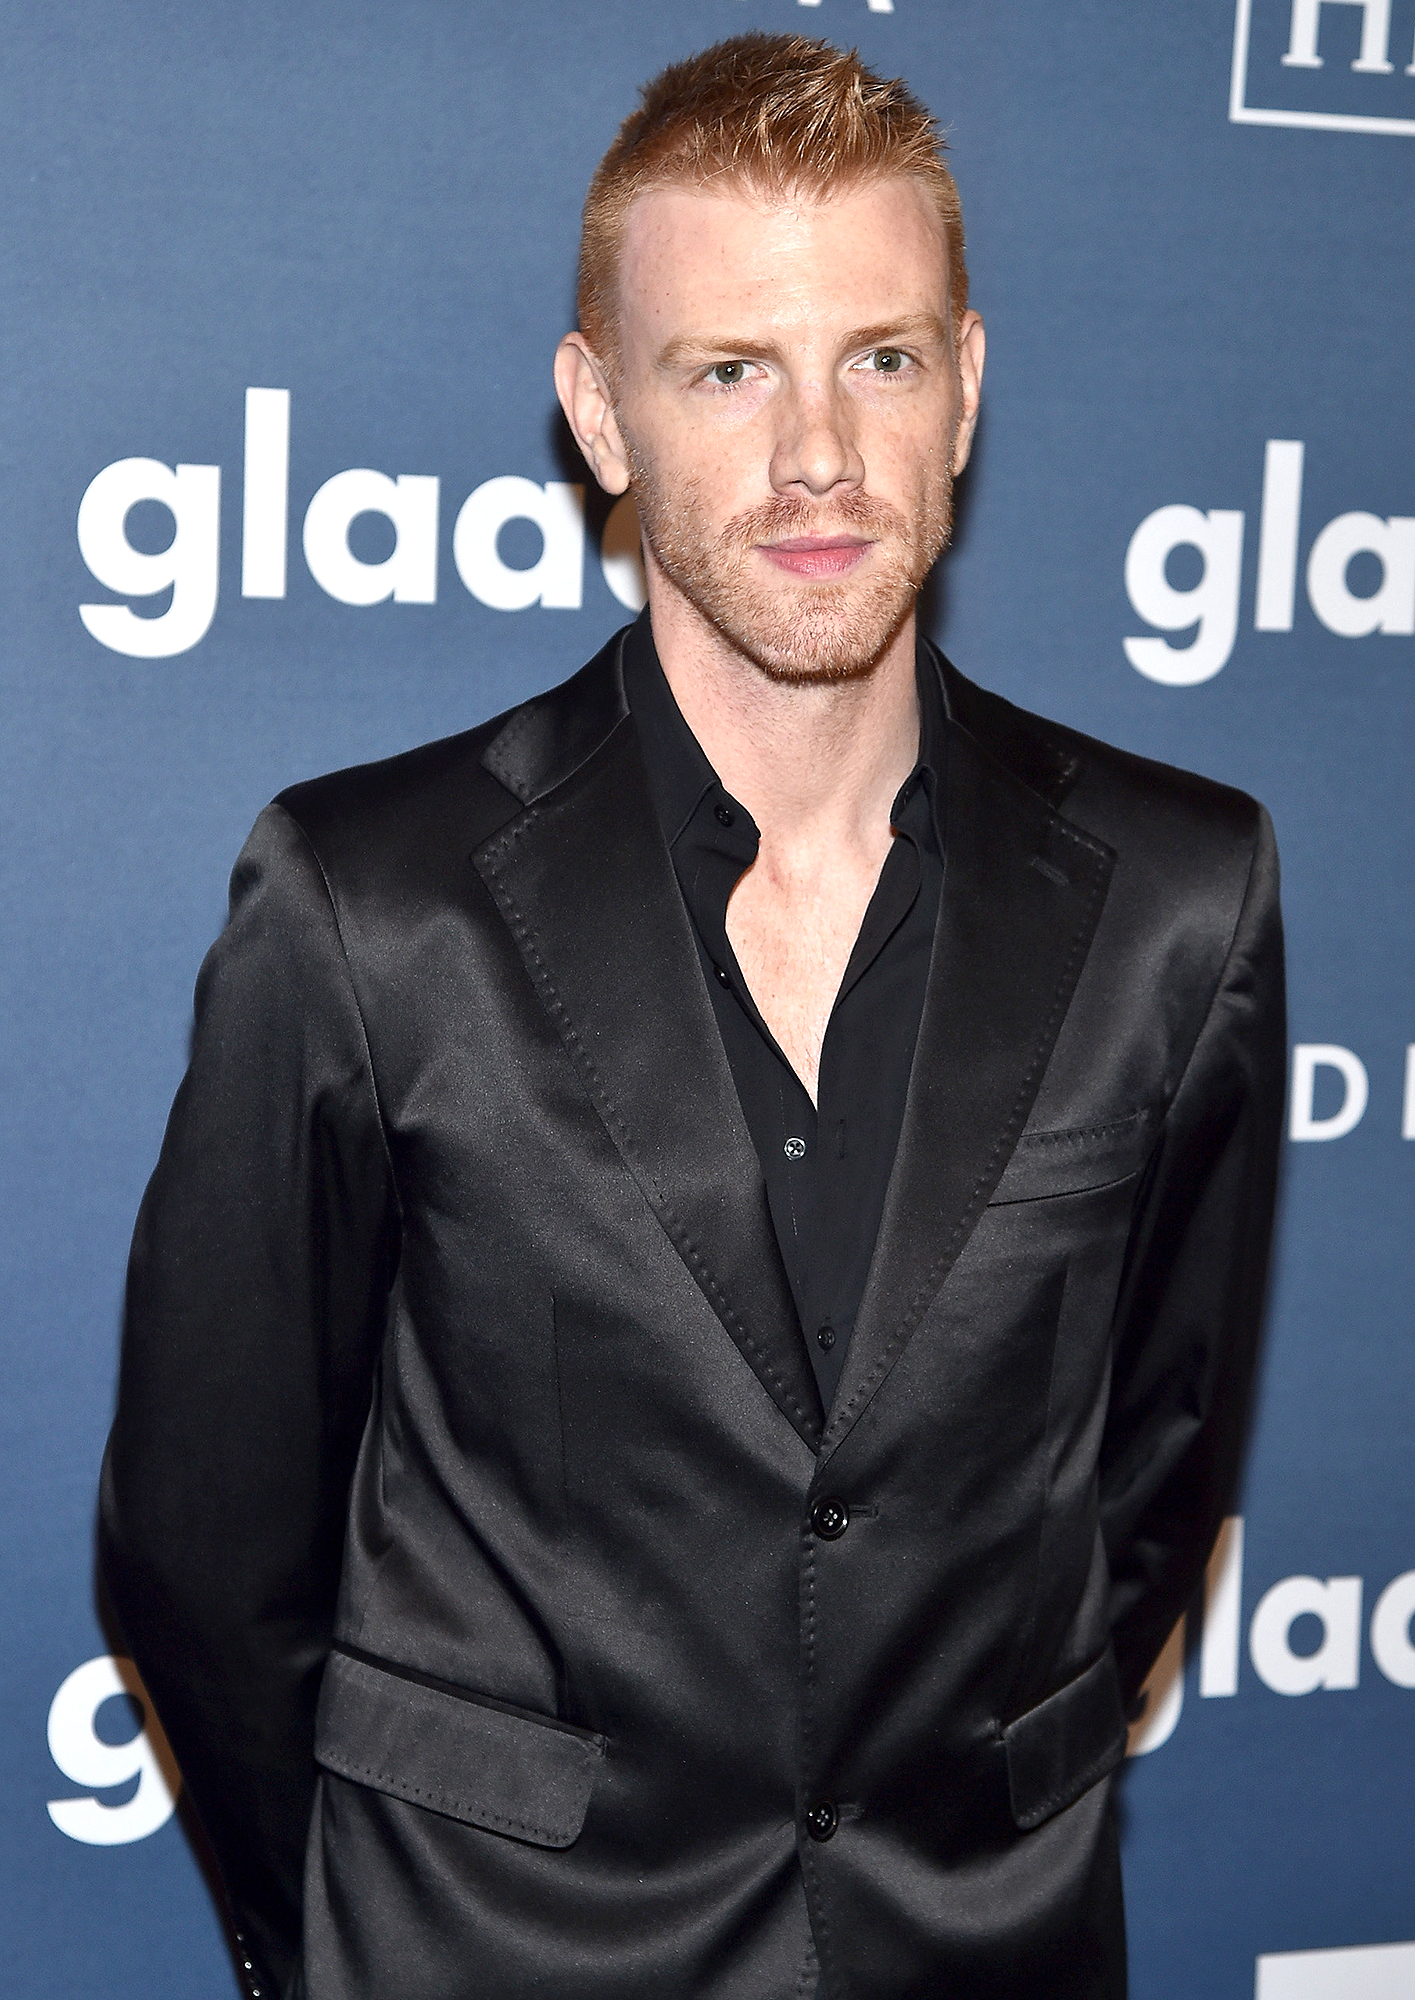 27th Annual GLAAD Media Awards In New York - Red Carpet